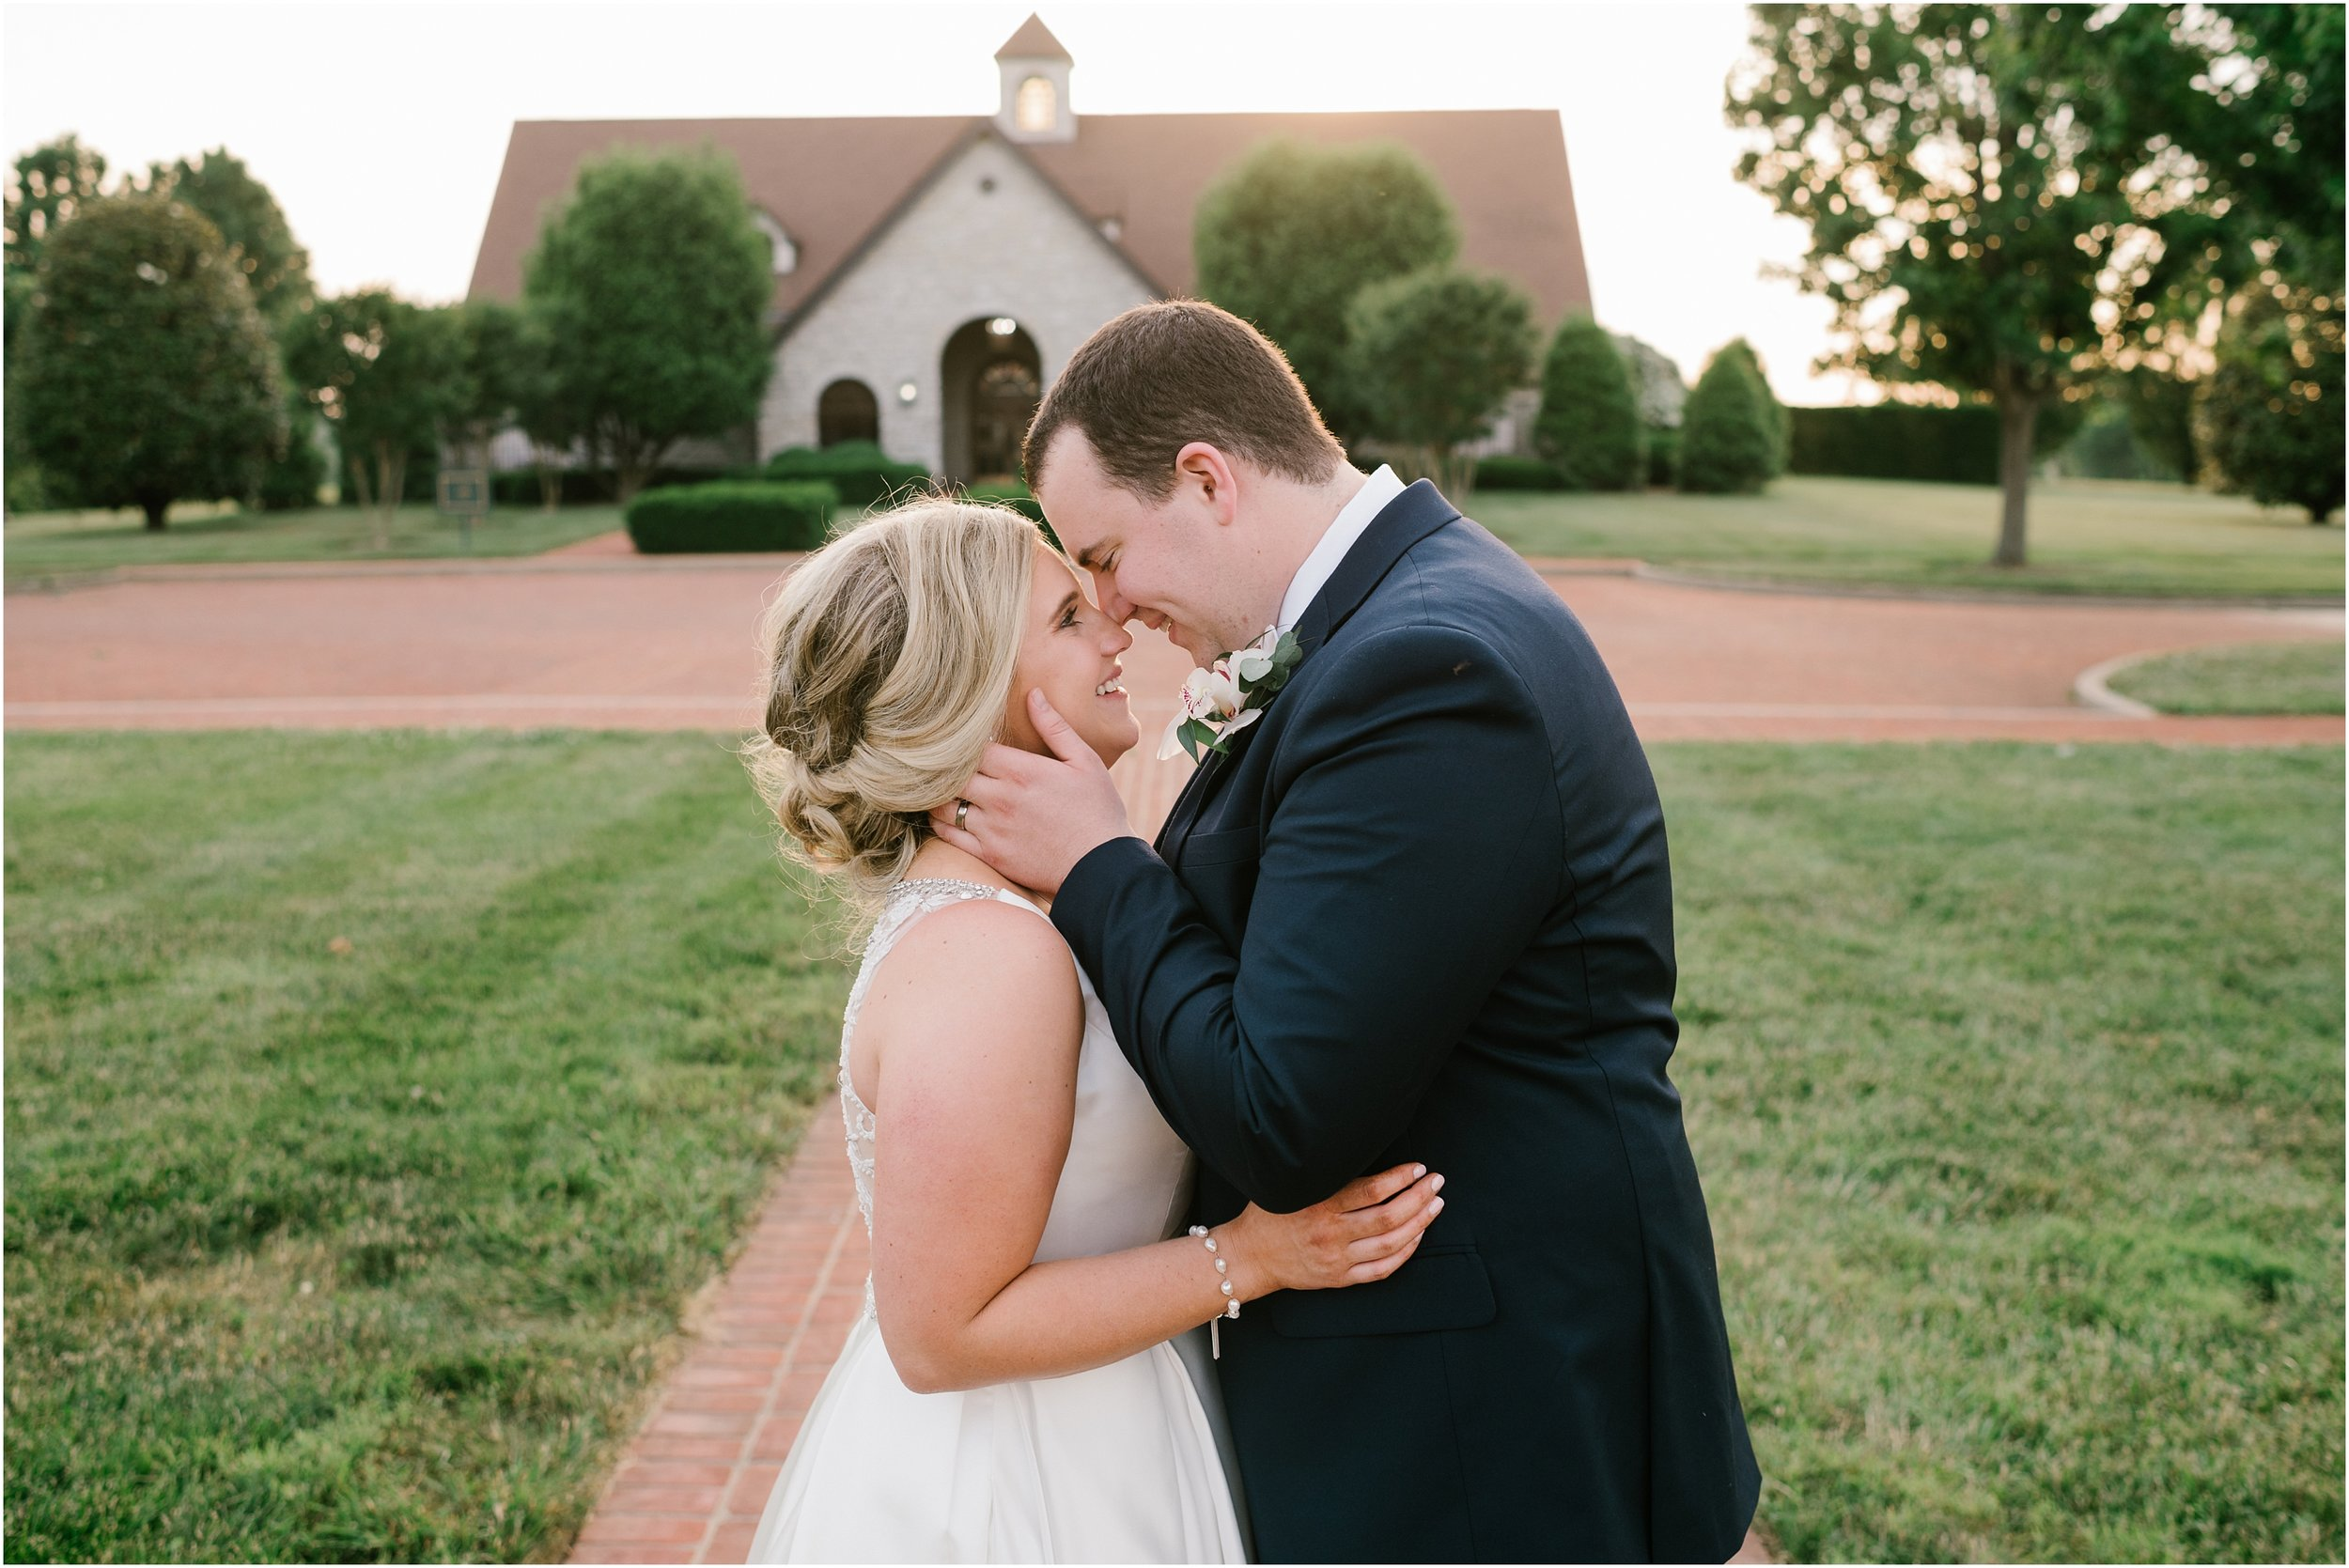 Rebecca Shehorn Photography Indianapolis Wedding Photographer Coxhall Garden Engagement_0260.jpg